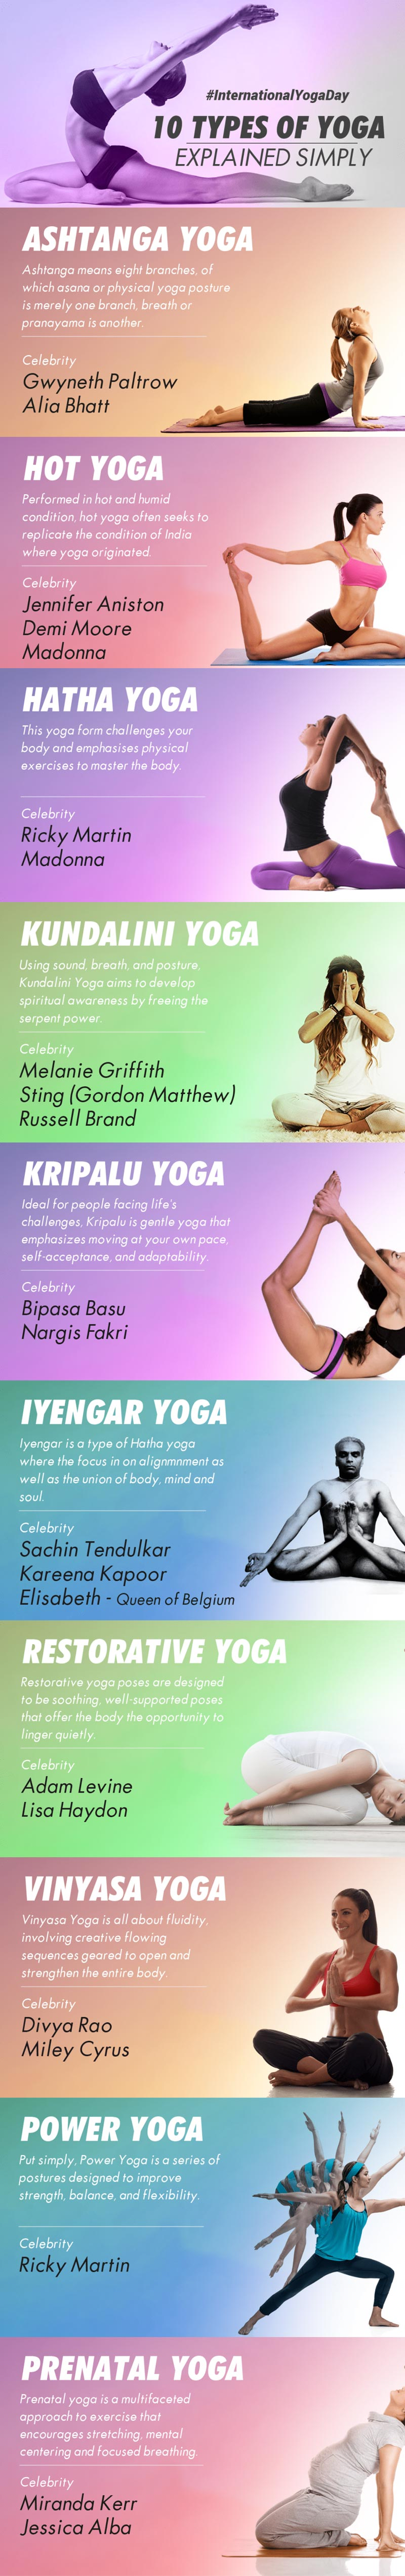 Types of Yoga explained simply